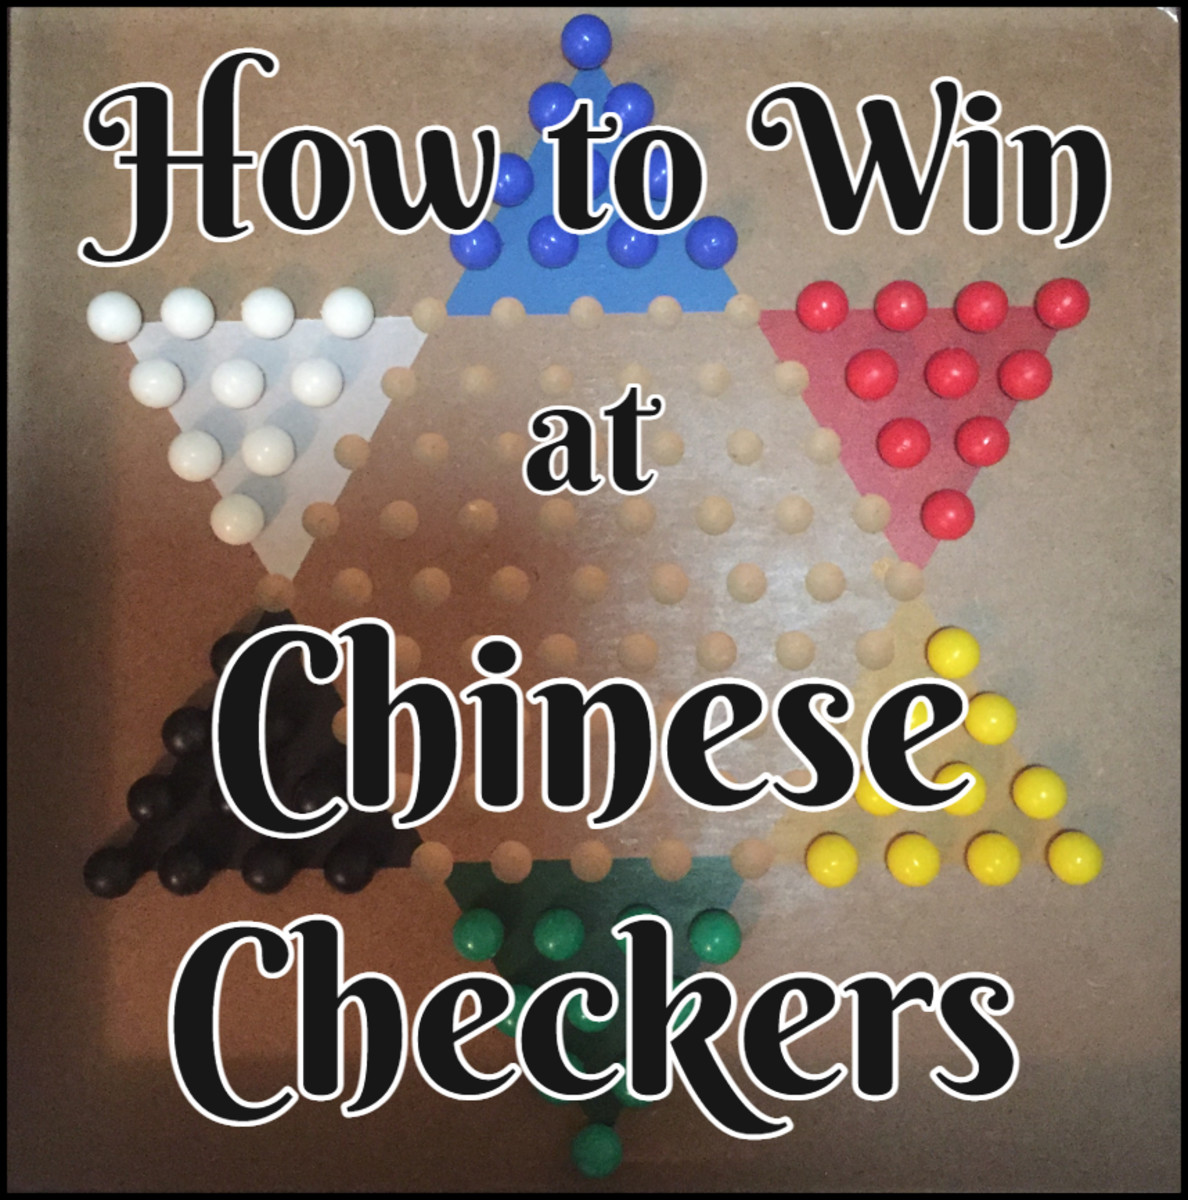 Chinese Checkers Strategy and Tactics: Tips and Tricks to Win Every Time